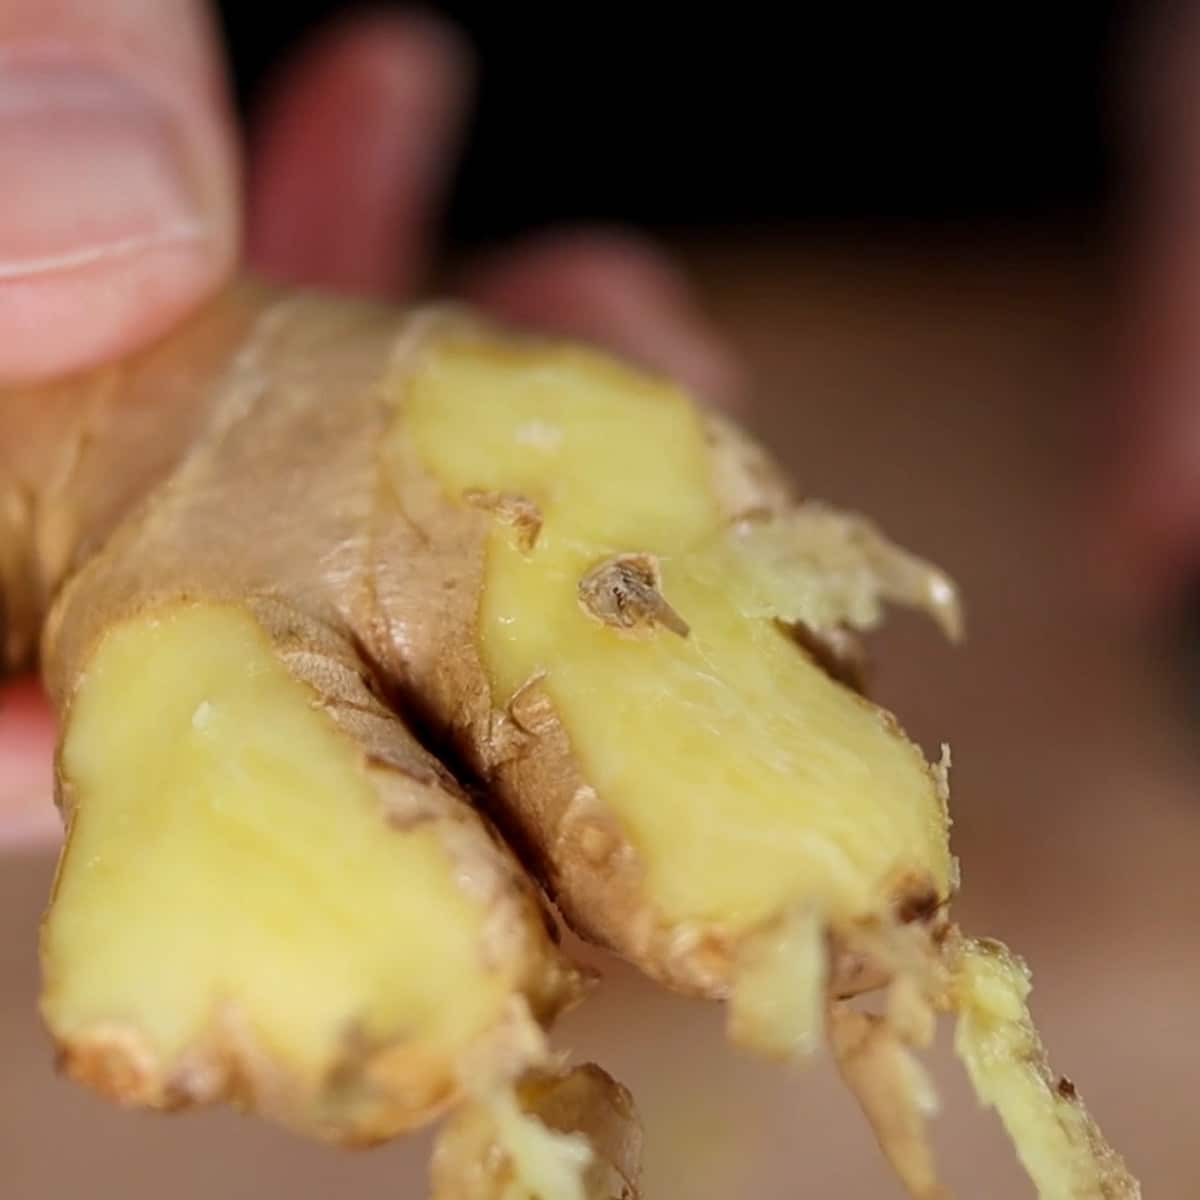 ginger half peeled with spoon